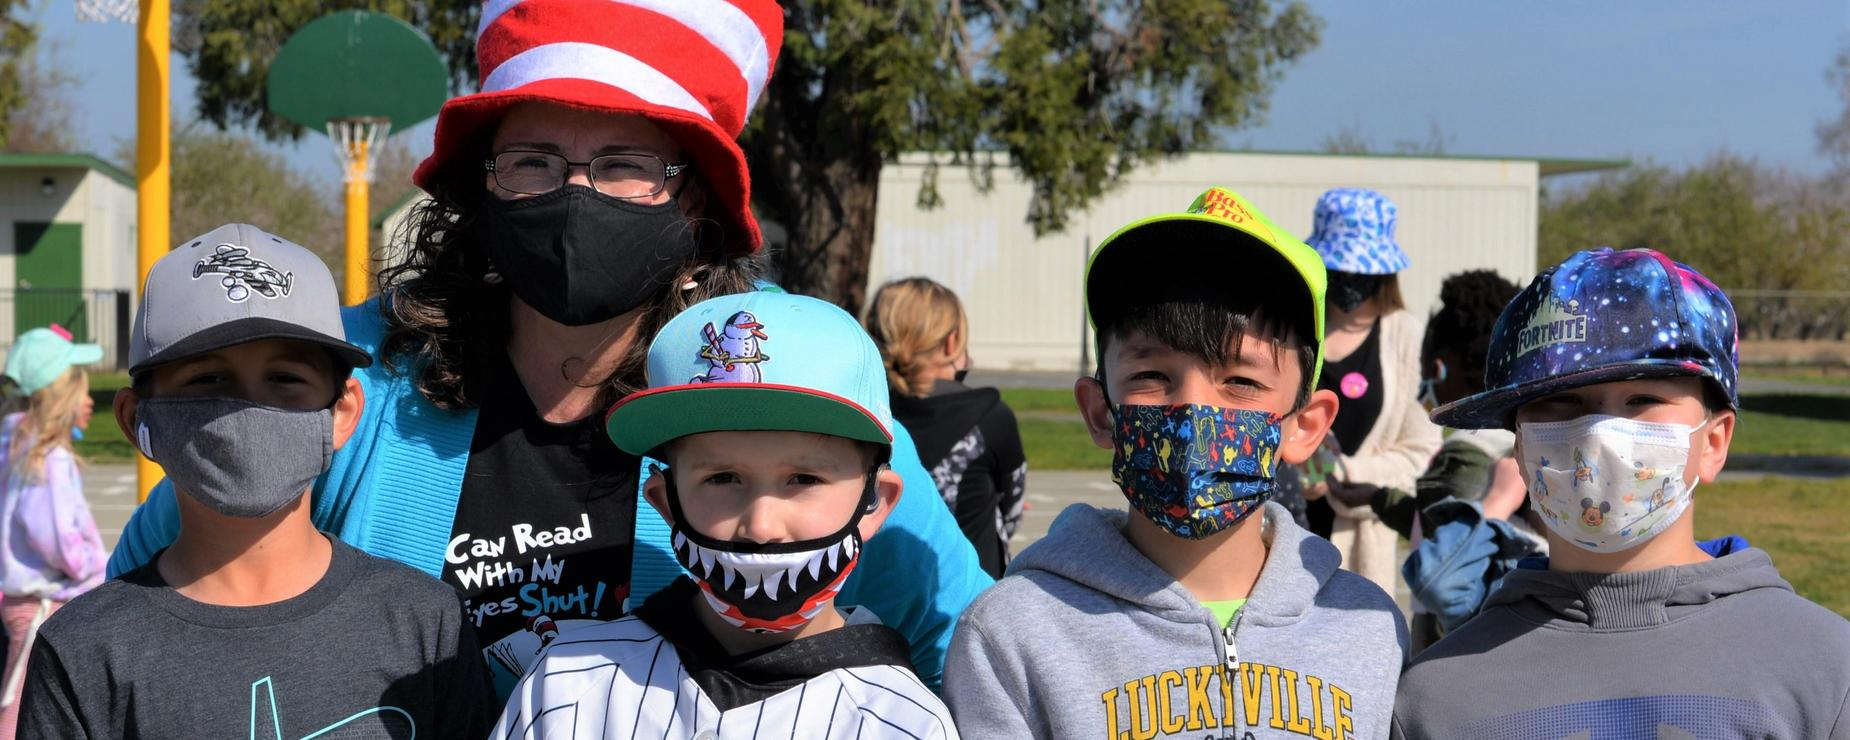 teacher and students dressed up for crazy hat day